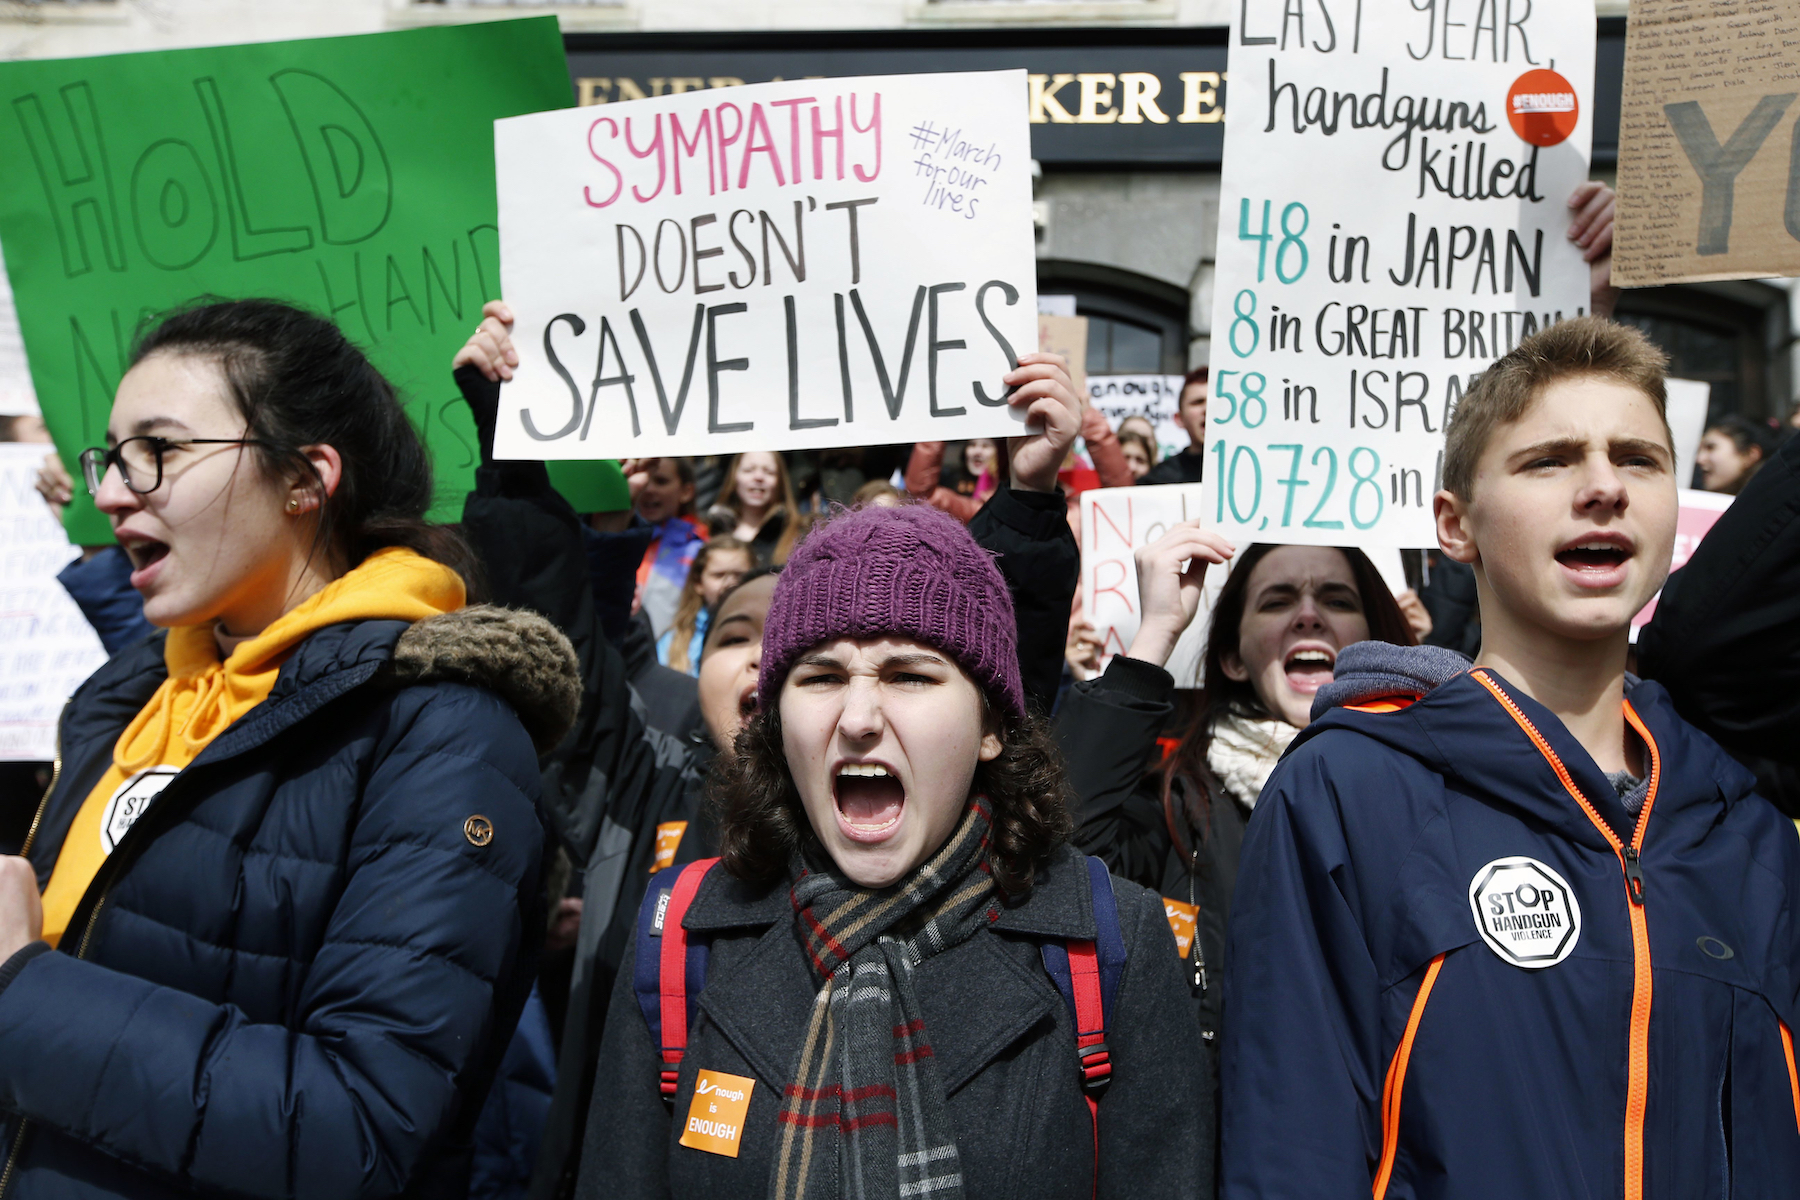 "<div class=""meta image-caption""><div class=""origin-logo origin-image ap""><span>AP</span></div><span class=""caption-text"">Boston area students chant on the Statehouse steps during a rally in Boston, Wednesday, March 14, 2018. (AP Photo/Michael Dwyer)</span></div>"